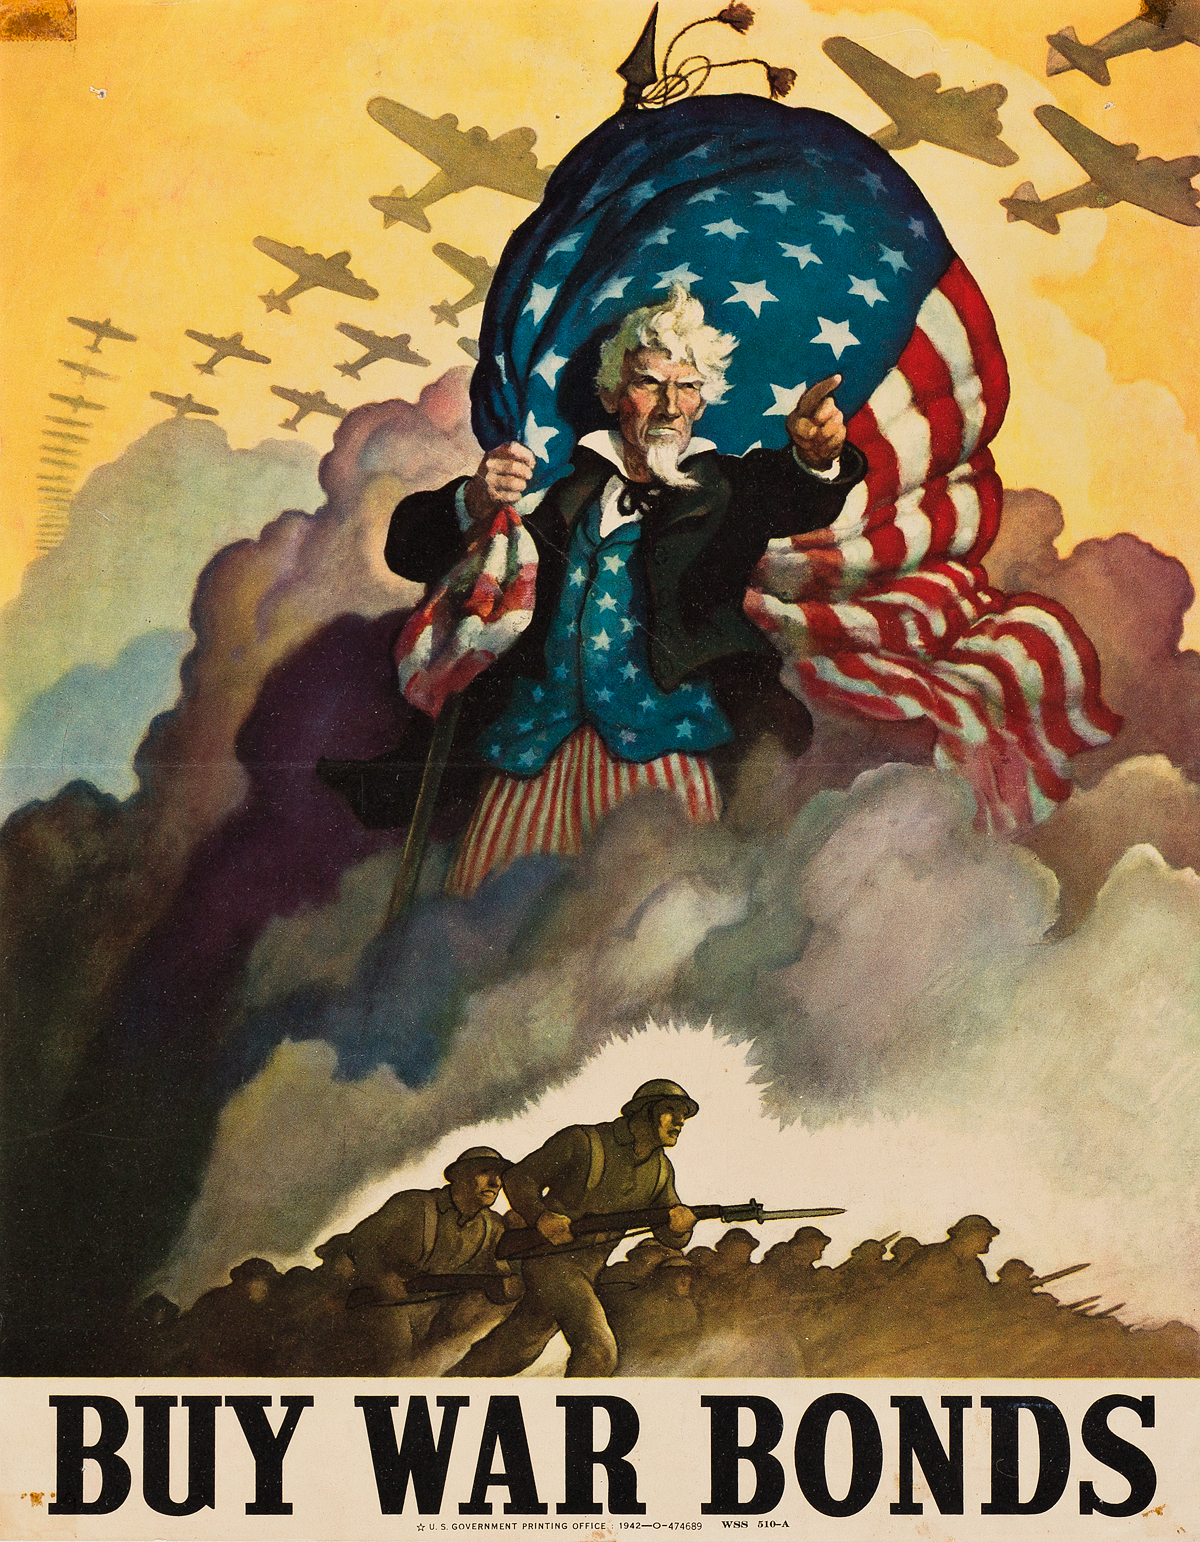 VARIOUS-ARTISTS-[WORLD-WAR-II--WAR-BONDS-LOANS--STAMPS]-Group-of-16-small-format-posters-Circa-1942-Sizes-vary